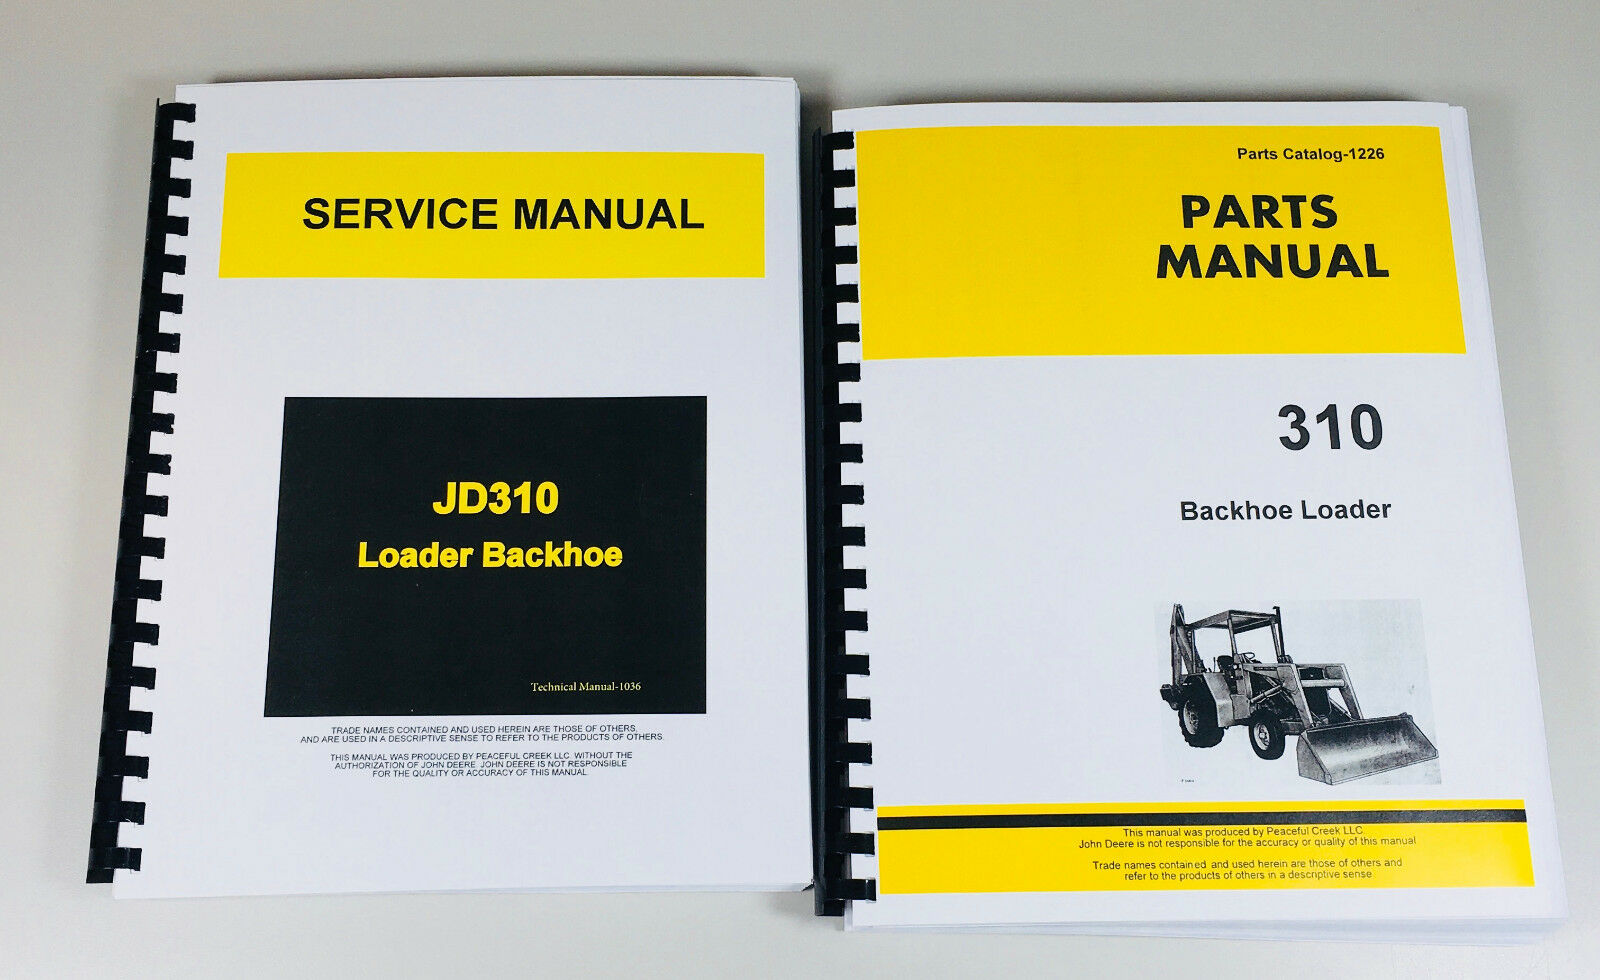 These are new reproductions of Original Equipment Manufacturers (OEM)  Manuals